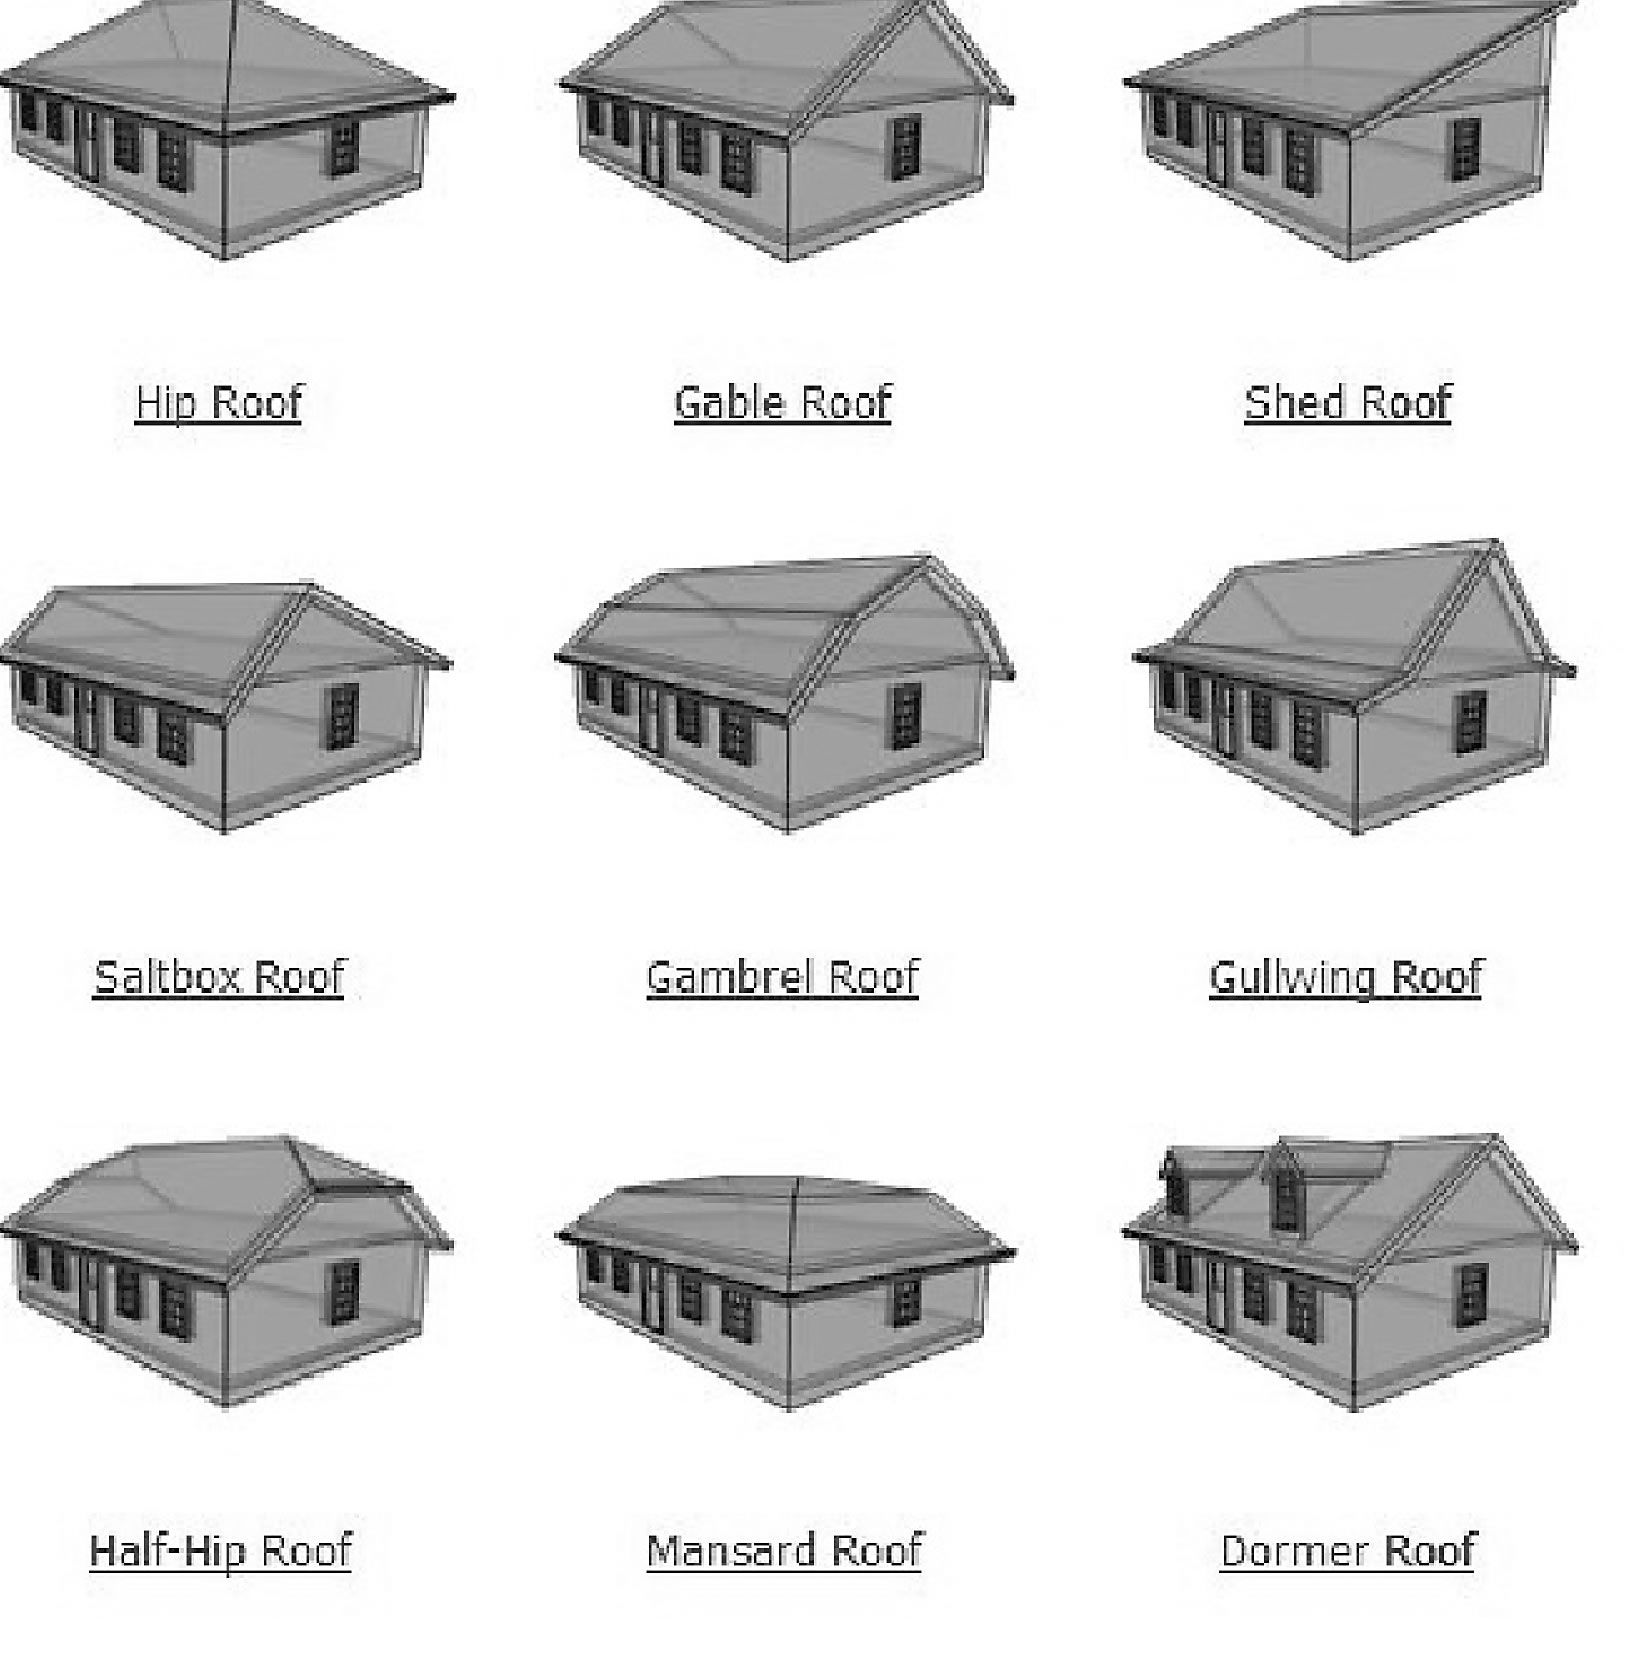 french roof styles roofs and shed dormer roofs they ForHouse Plans With Hip Roof Styles